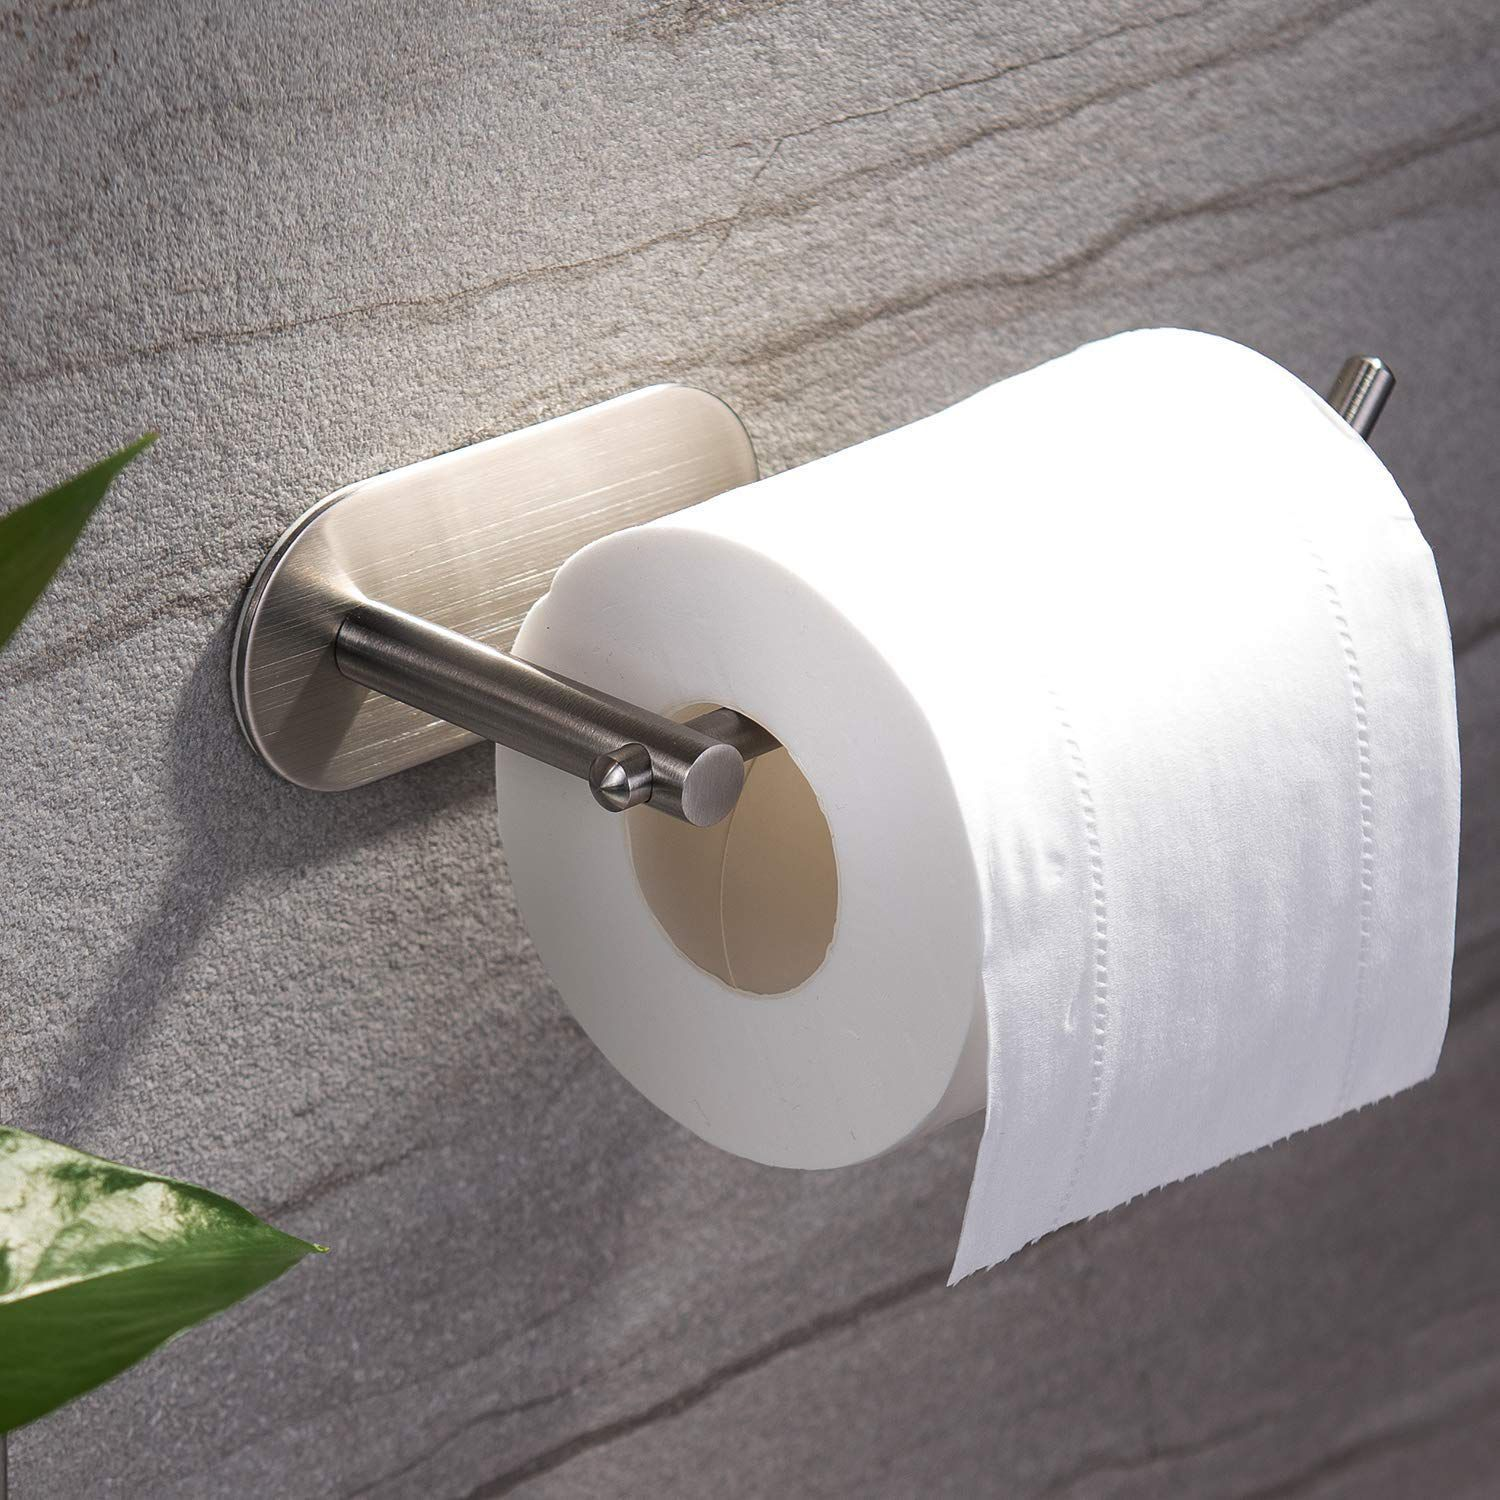 Three Things To Consider Before Buying A Toilet Paper Holder Interesting Things,2 Bedroom Apartment Plans Open Floor Plan